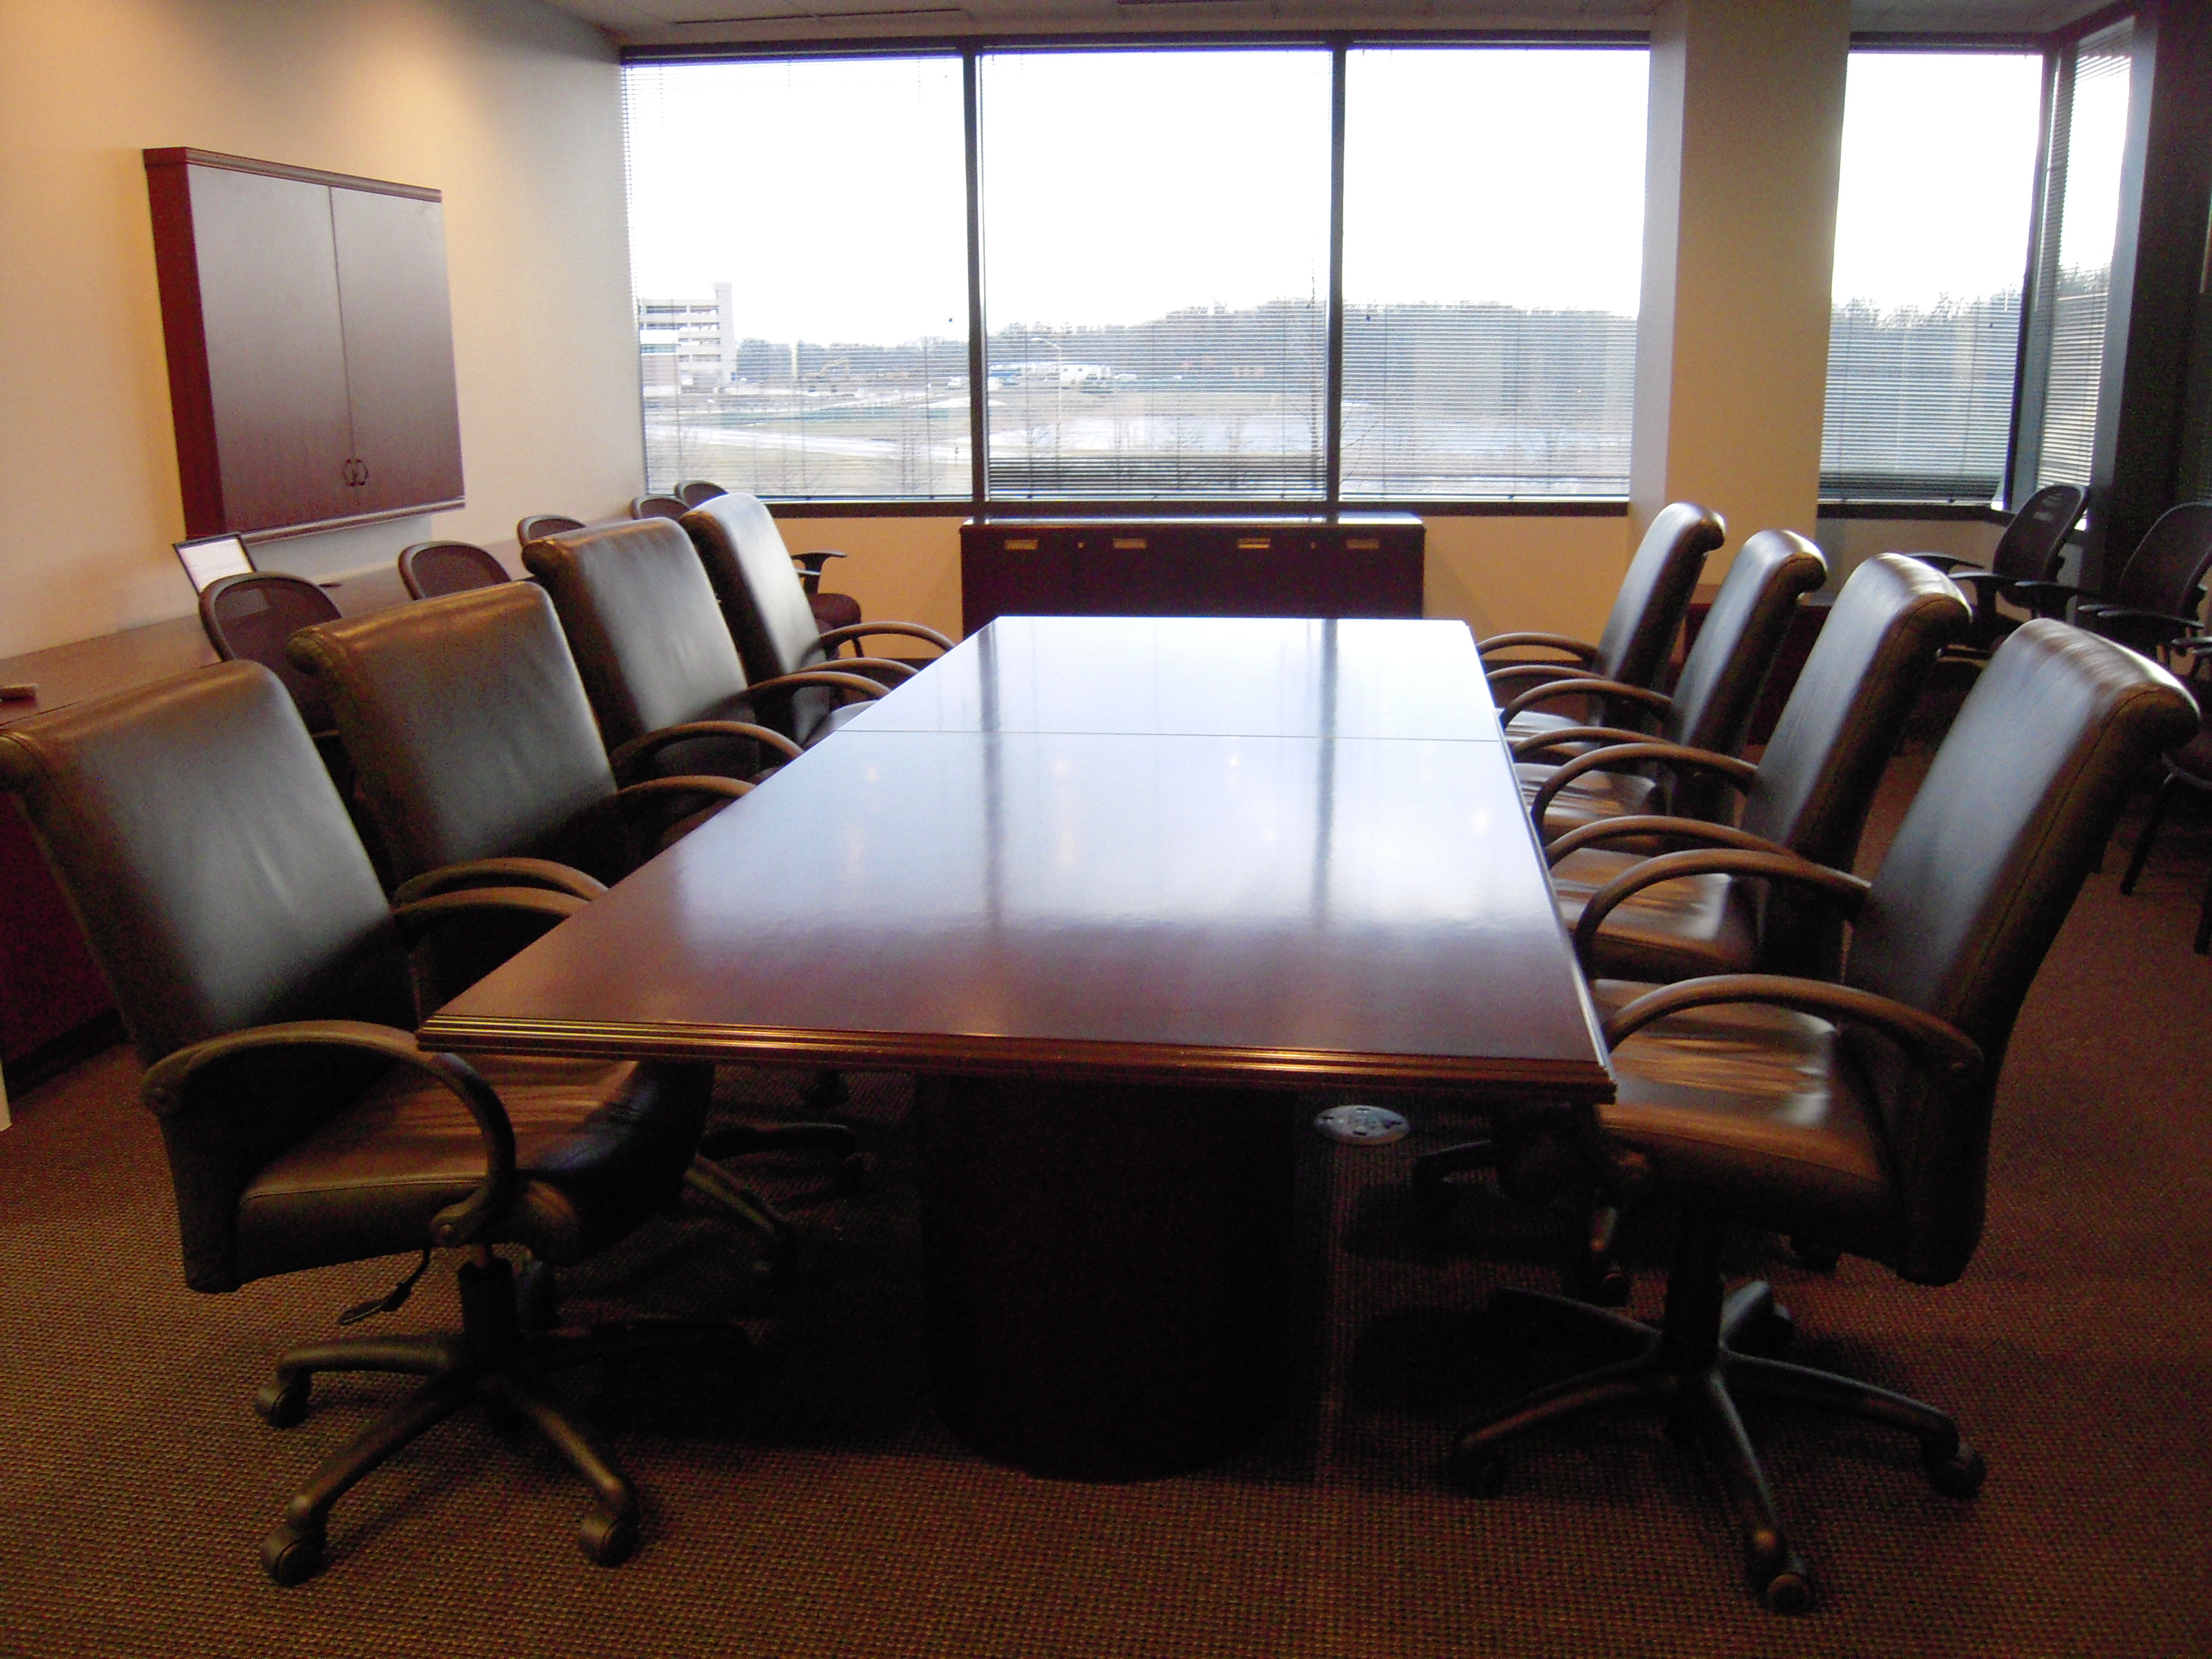 Conference Room A 01.JPG